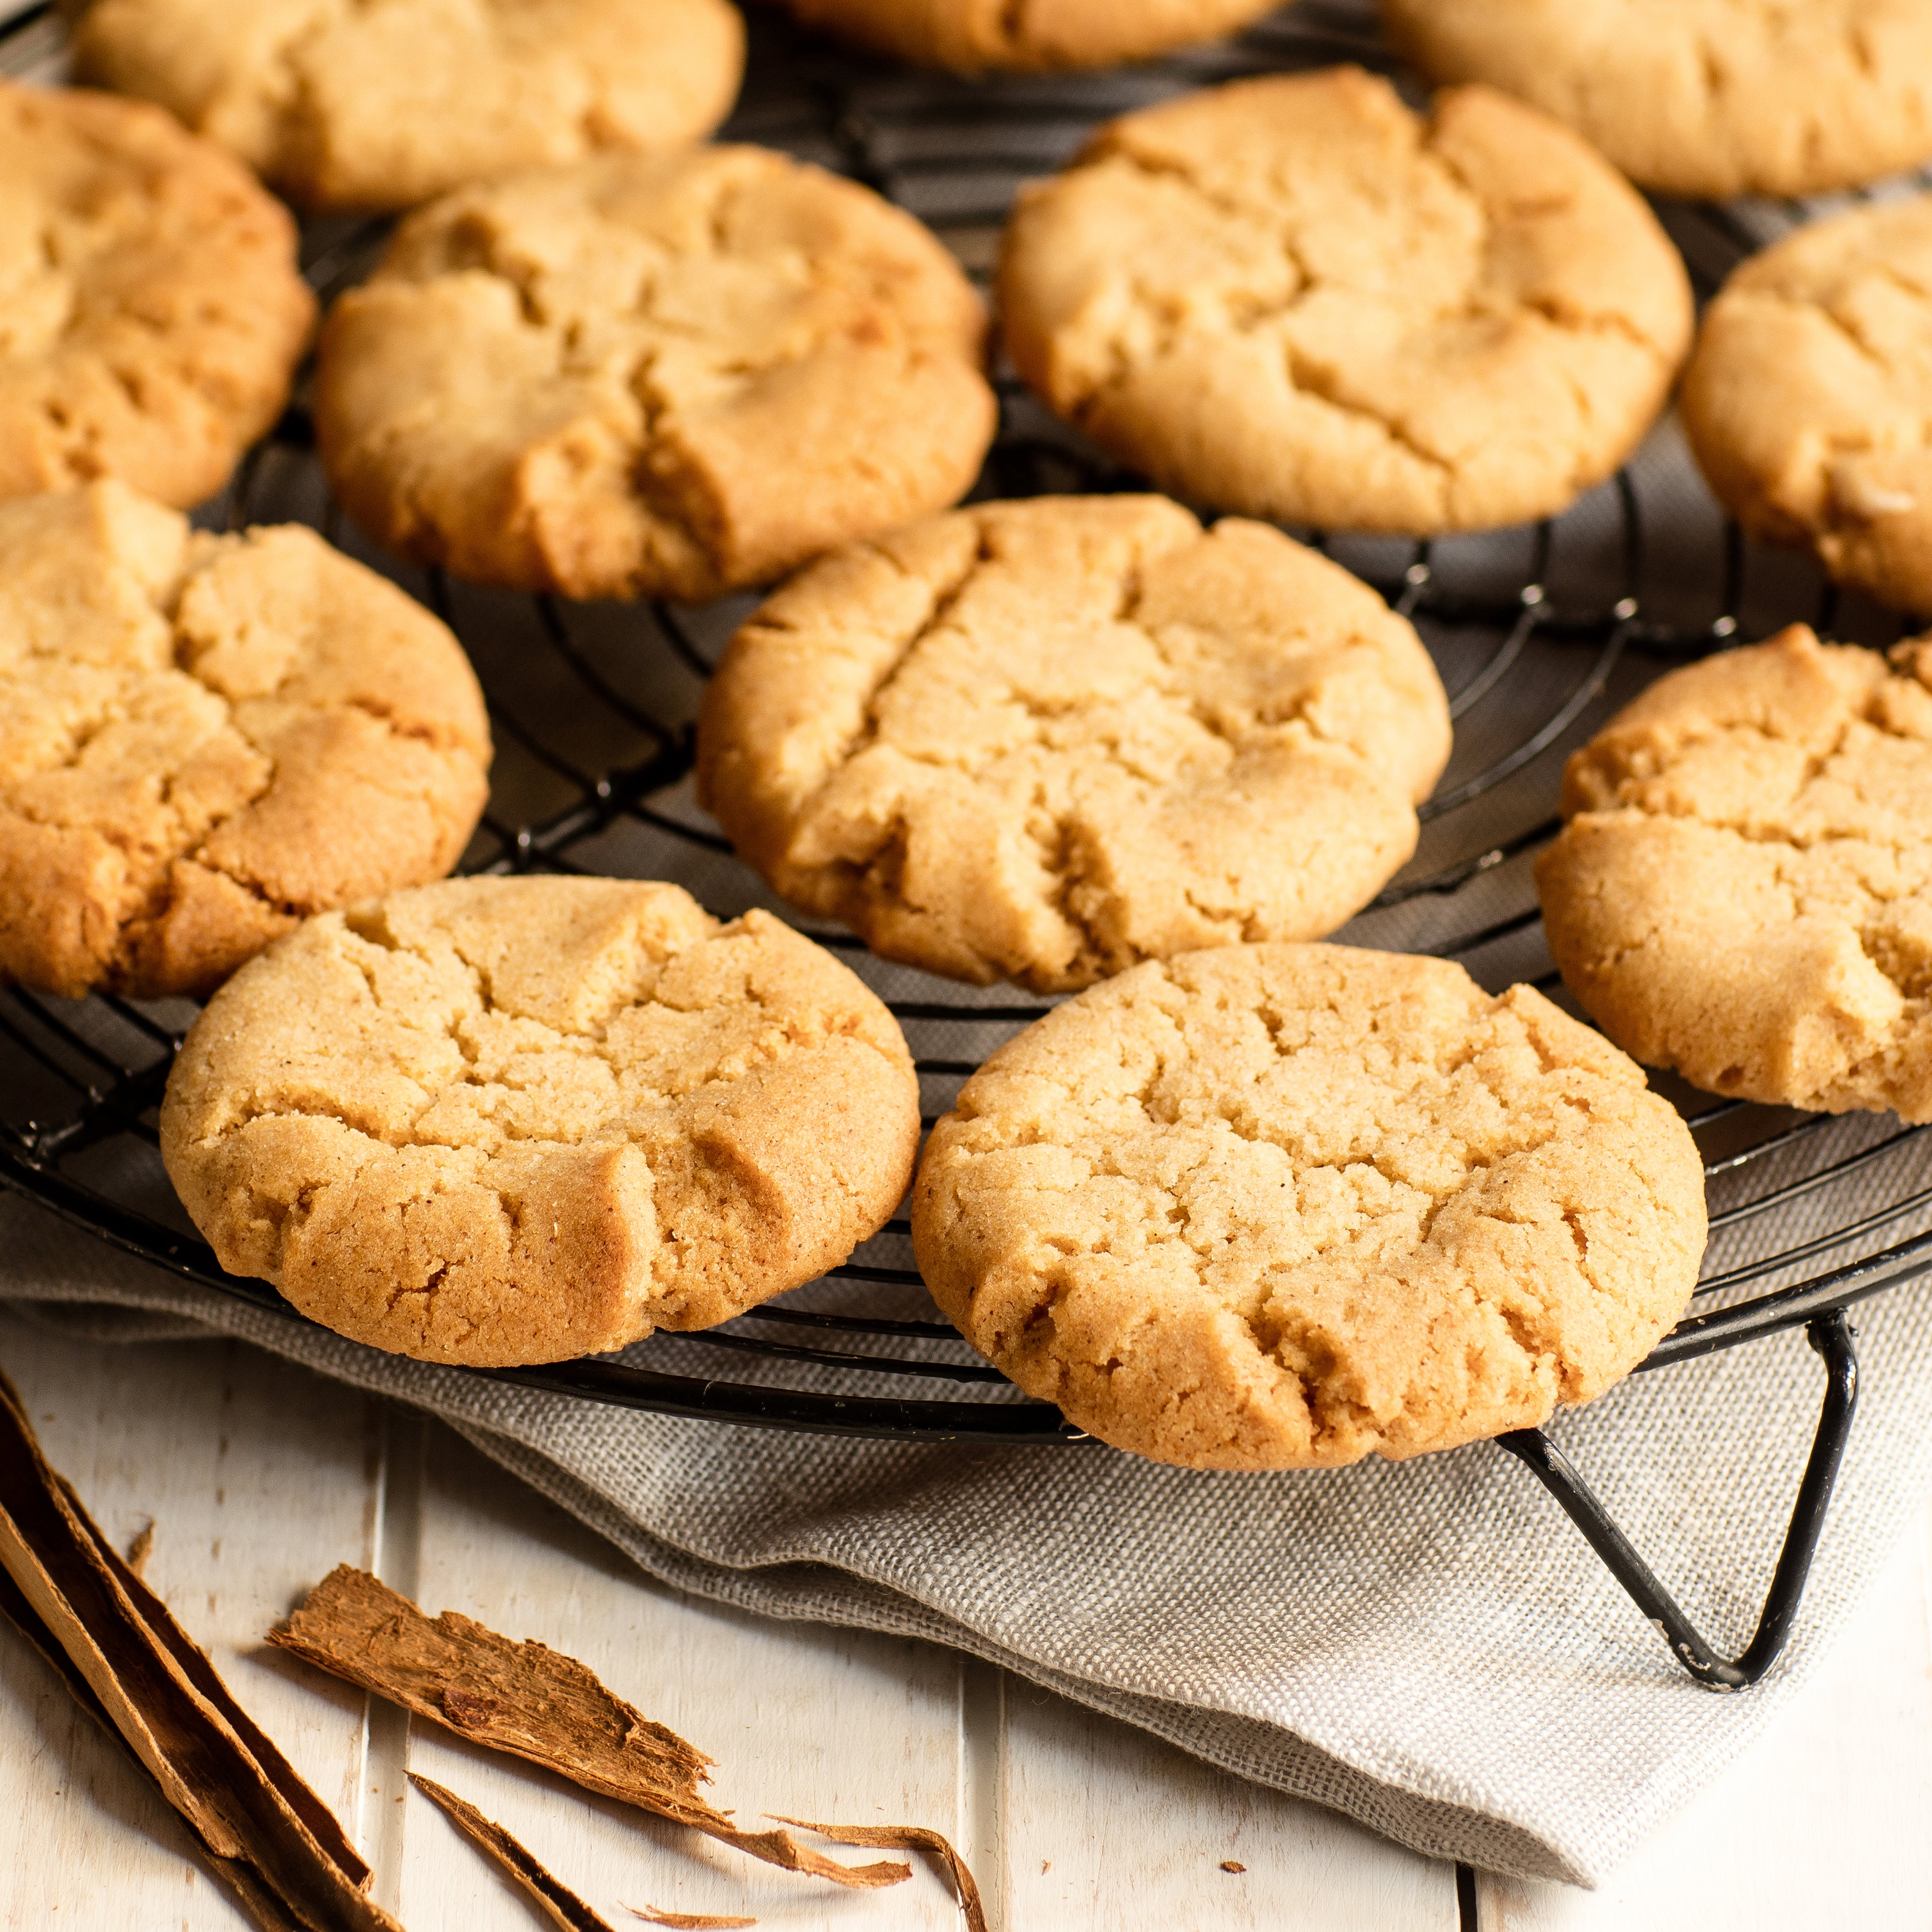 Biscuits laid out on circular cooking rack